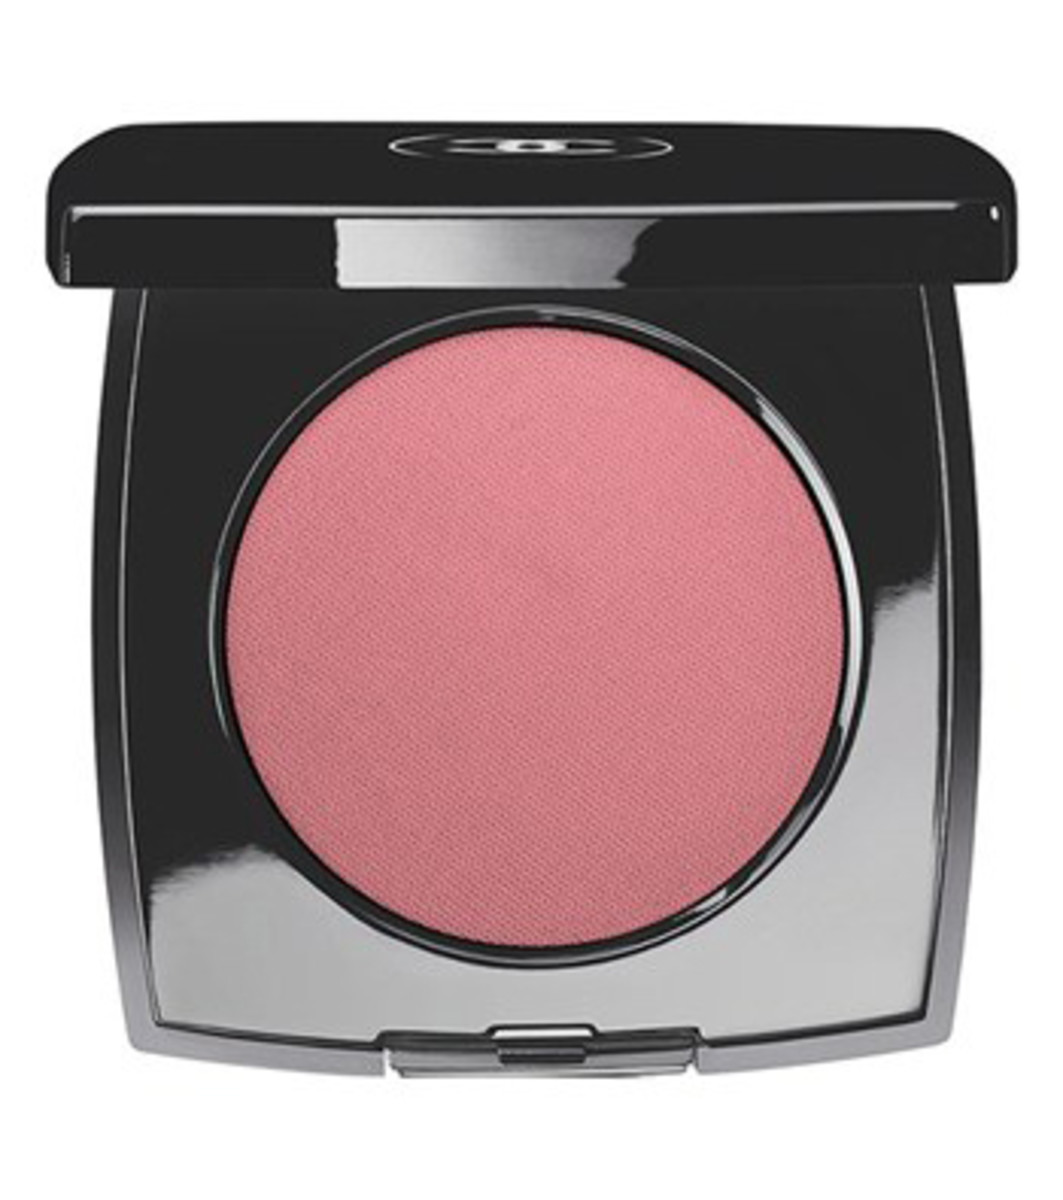 Chanel Le Blush Creme de Chanel in Inspiration